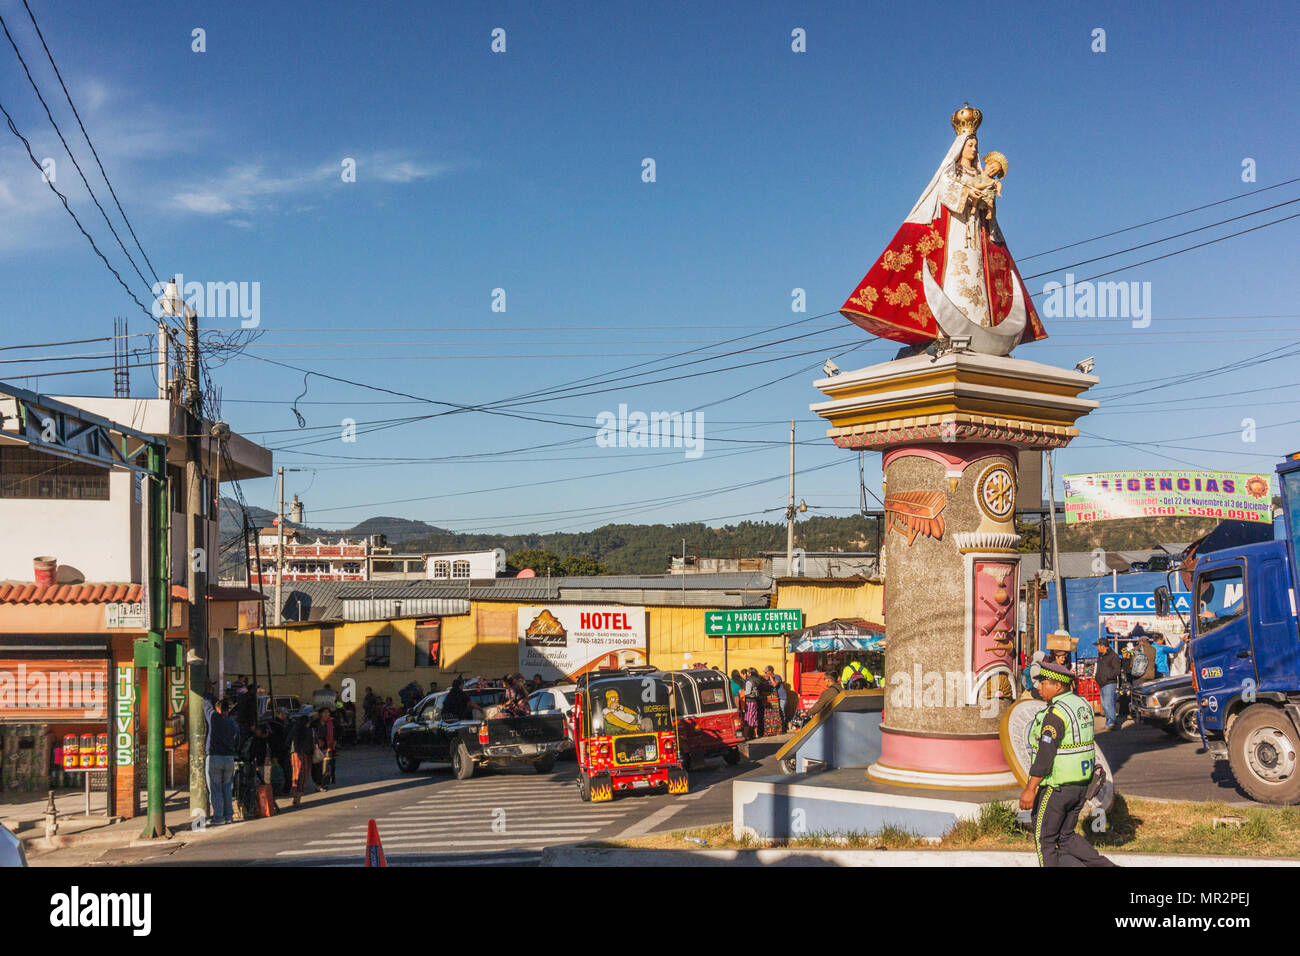 Solola, Guatemala - December 9, 2016: Mary with baby Jesus statue at the roads intersection in the small highlands town of Solola, Guatemala. - Stock Image